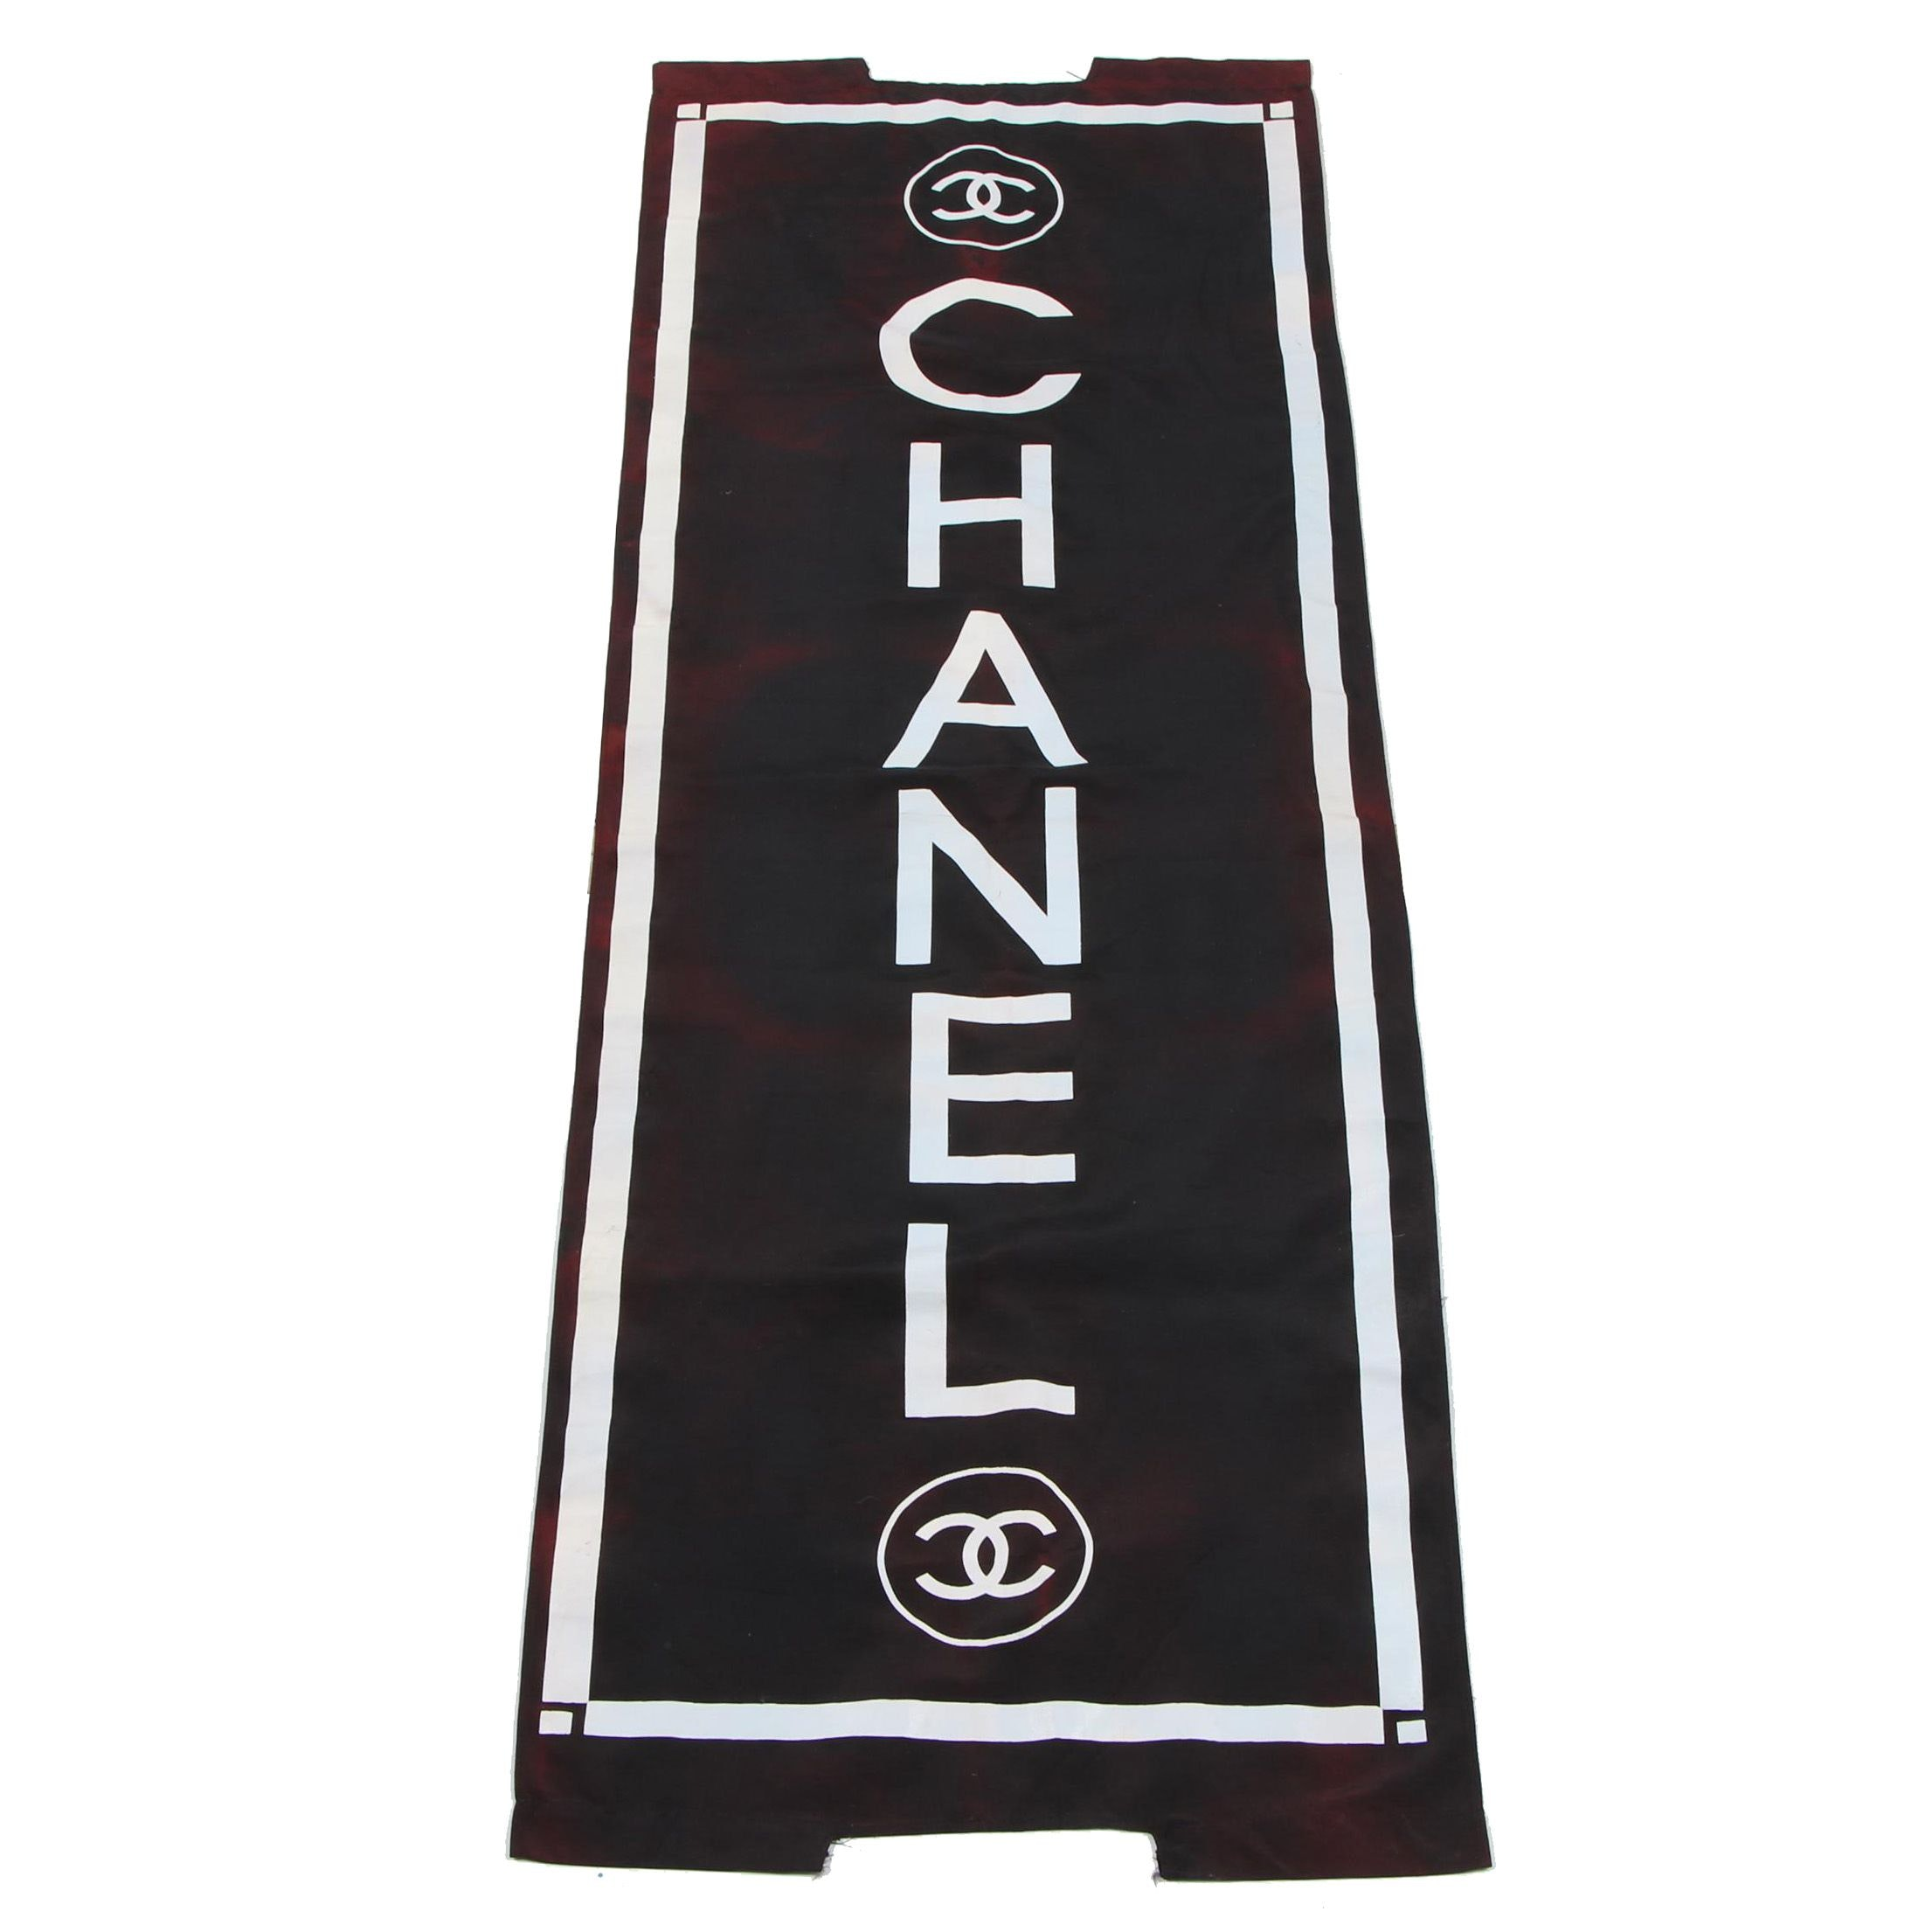 Chanel Retail Store Advertising Banner